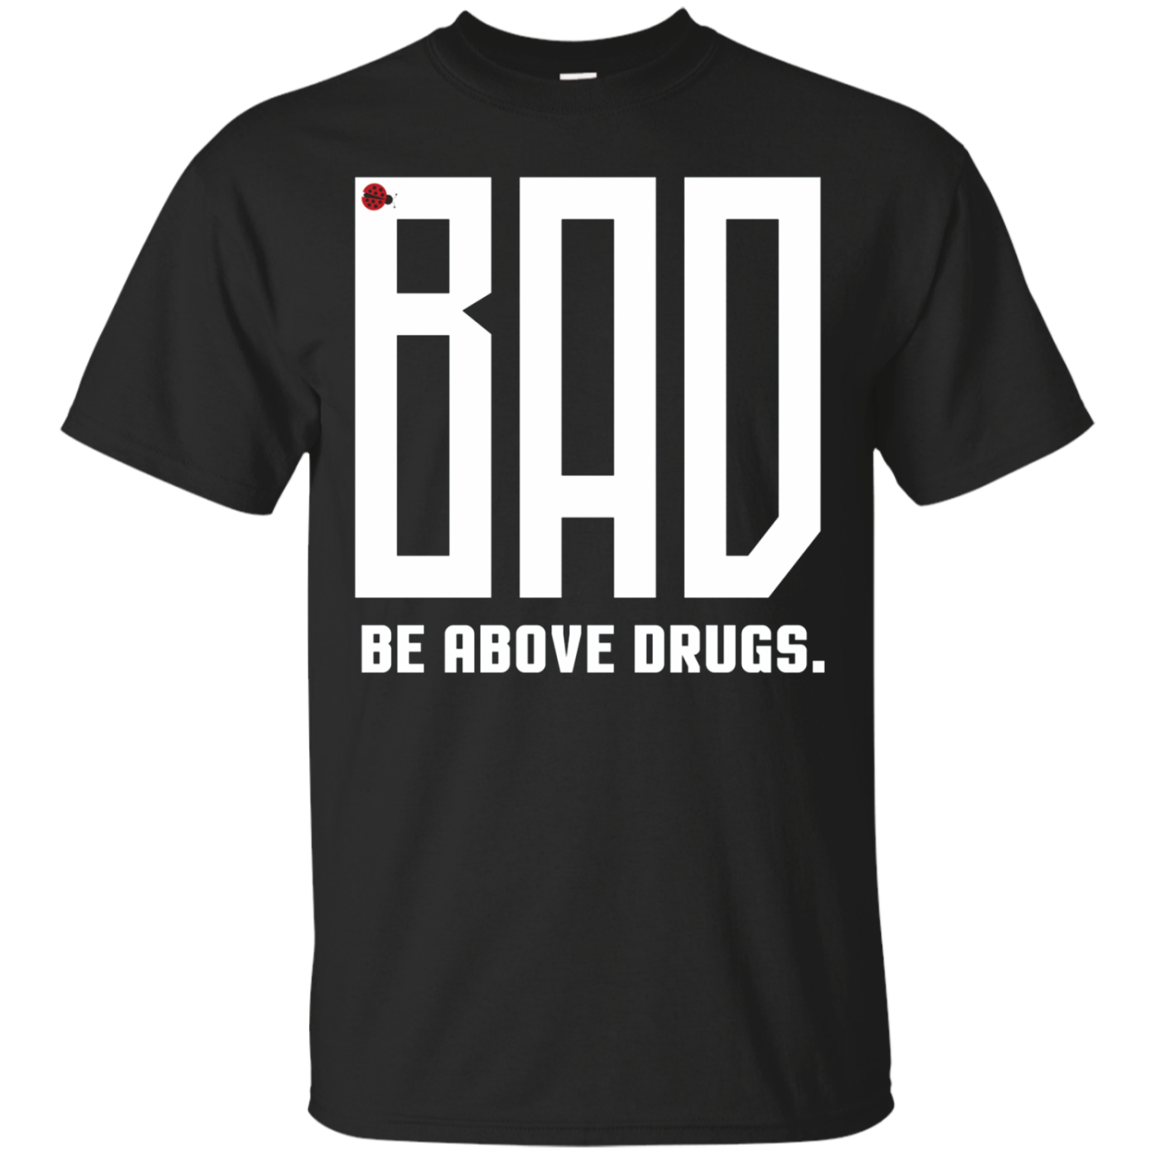 BADwear Anti-Drug Tee, Drug Prevention Apparel & Shirts